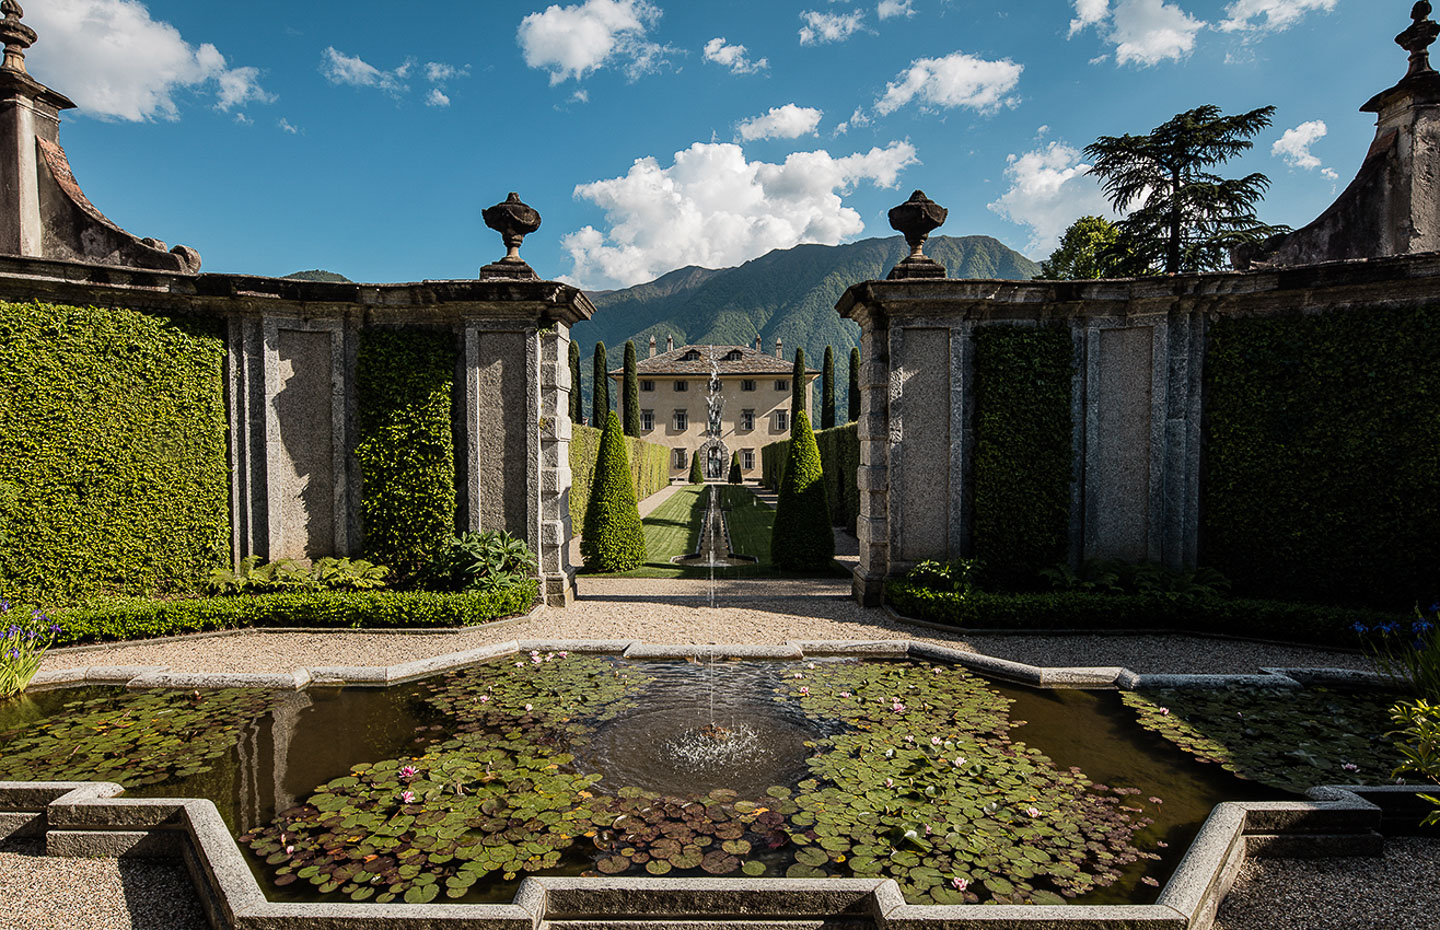 Villa Balbiano luxury property Lake Como oroginal famous provate residence cardinale Durini 17 century fountain lilies pond garden design